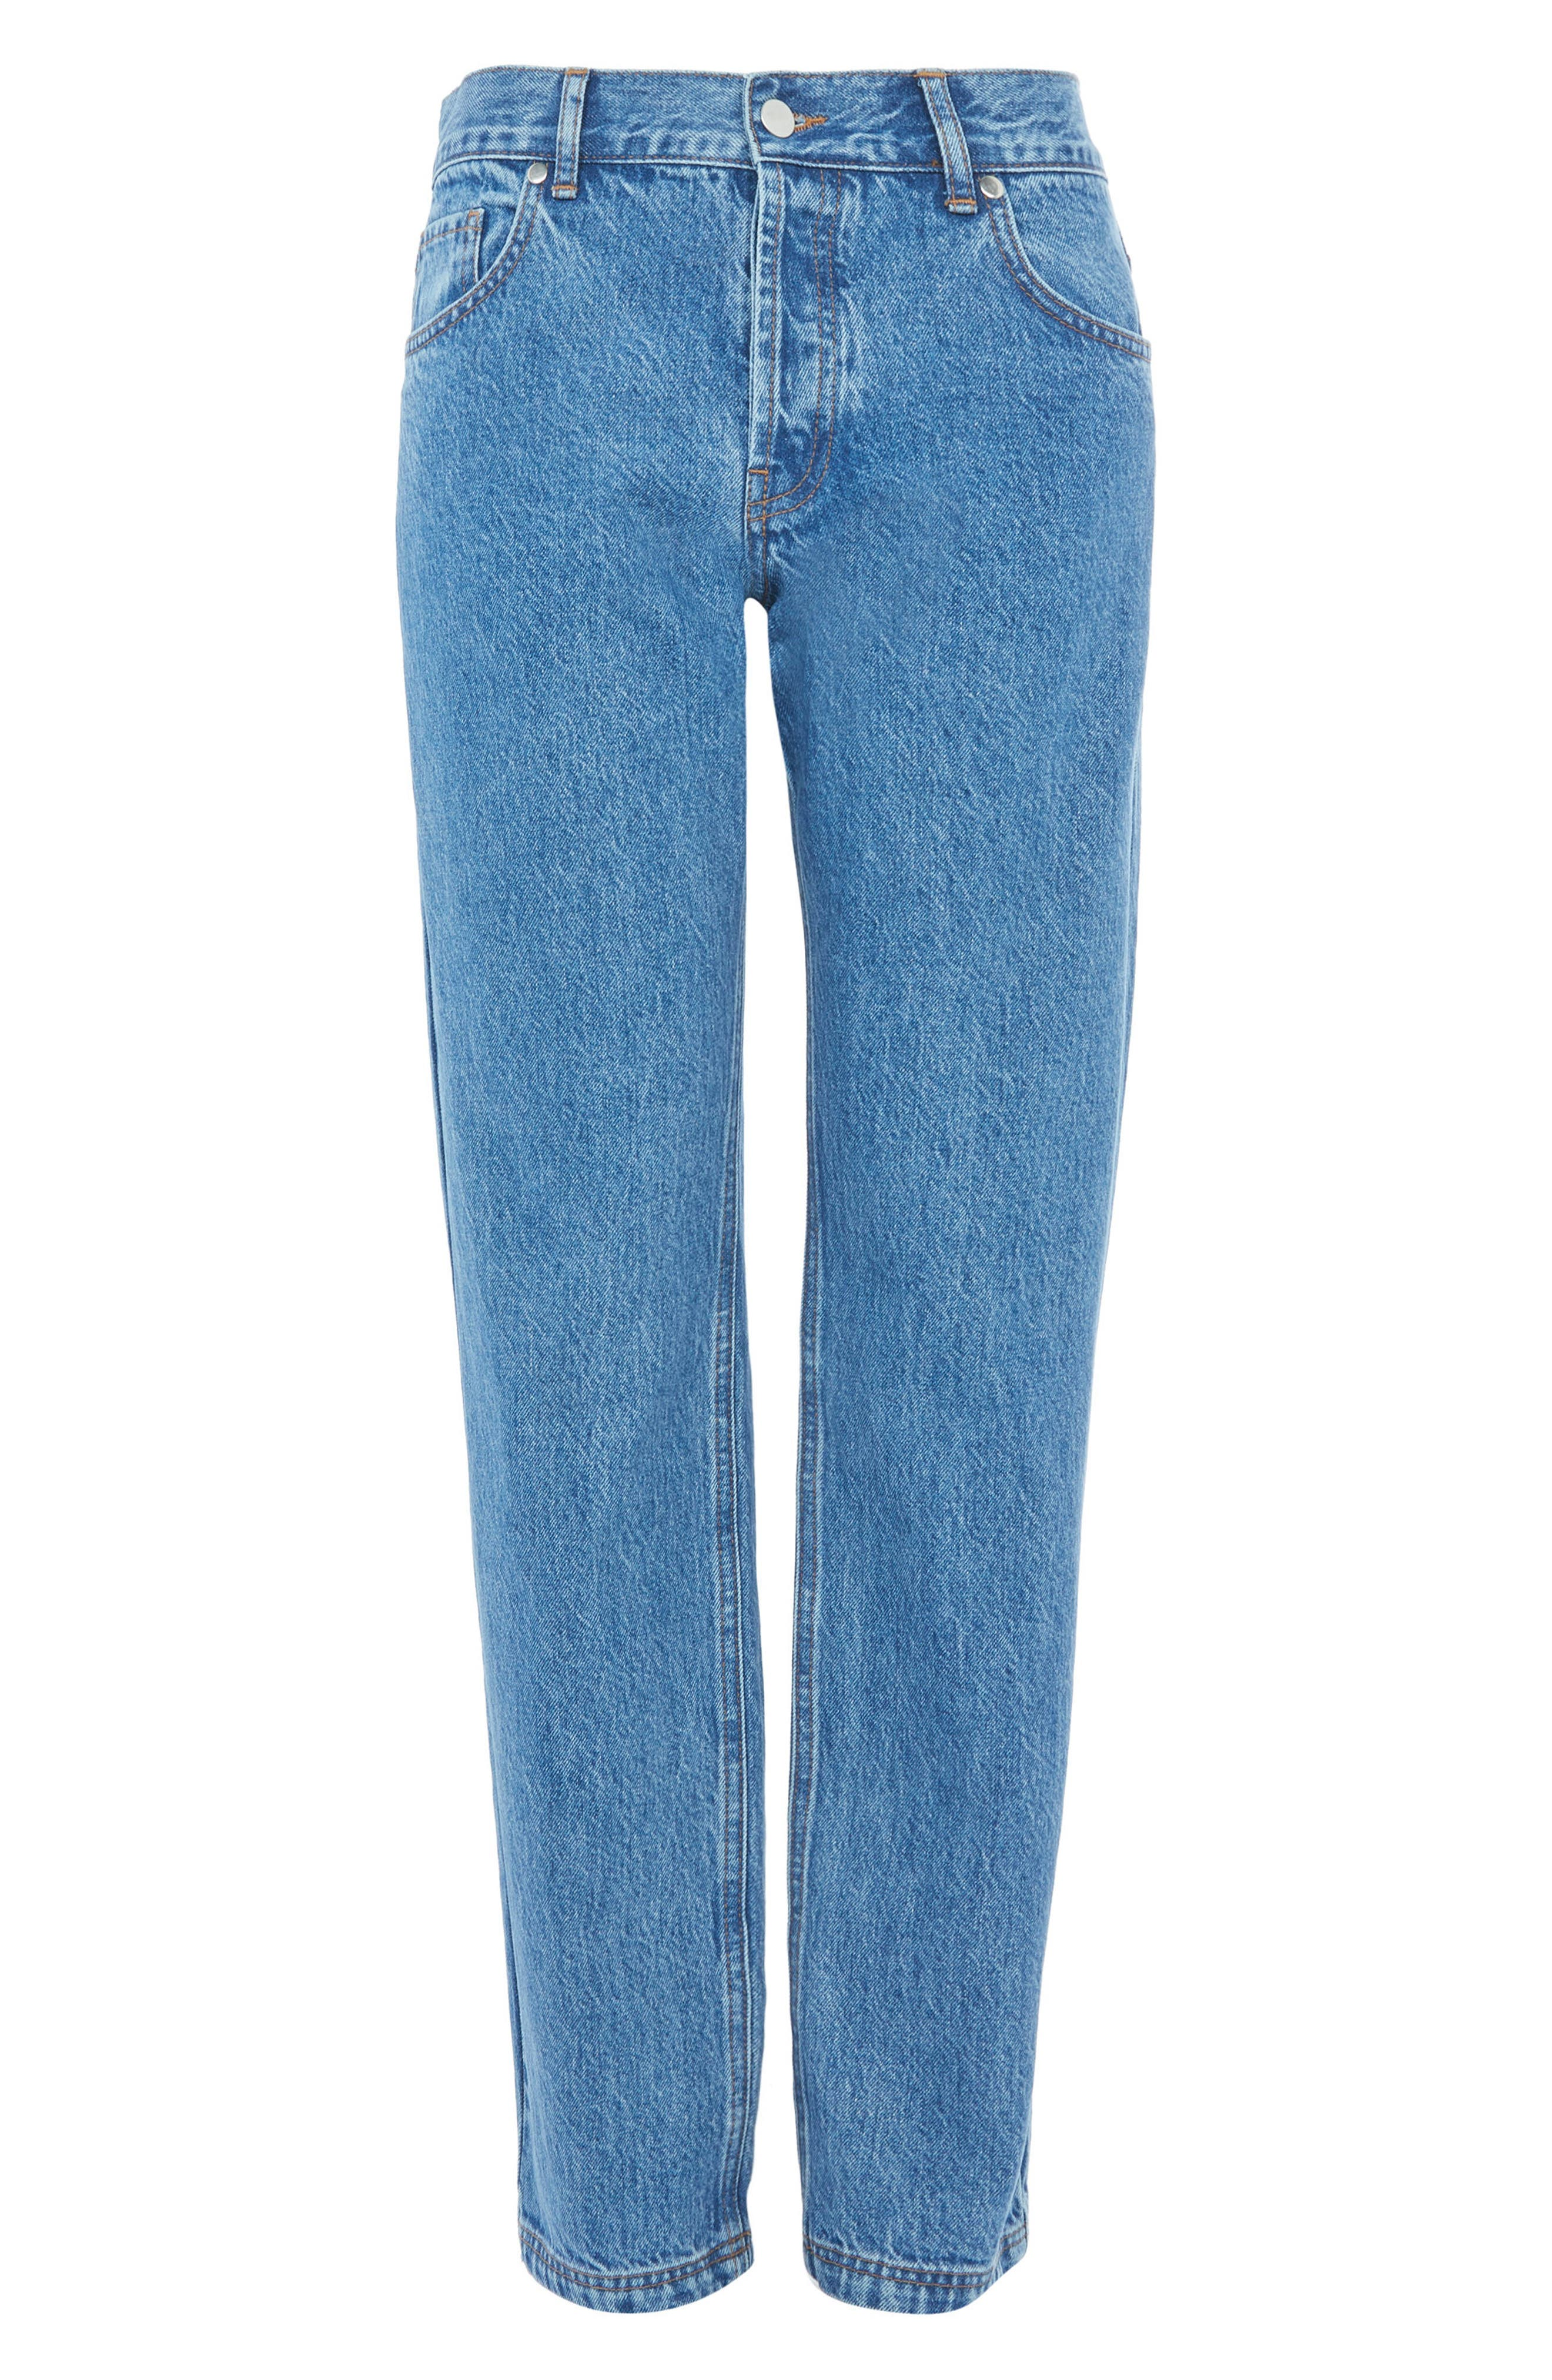 Main Image - Topshop Medium Wash Straight Leg Jeans